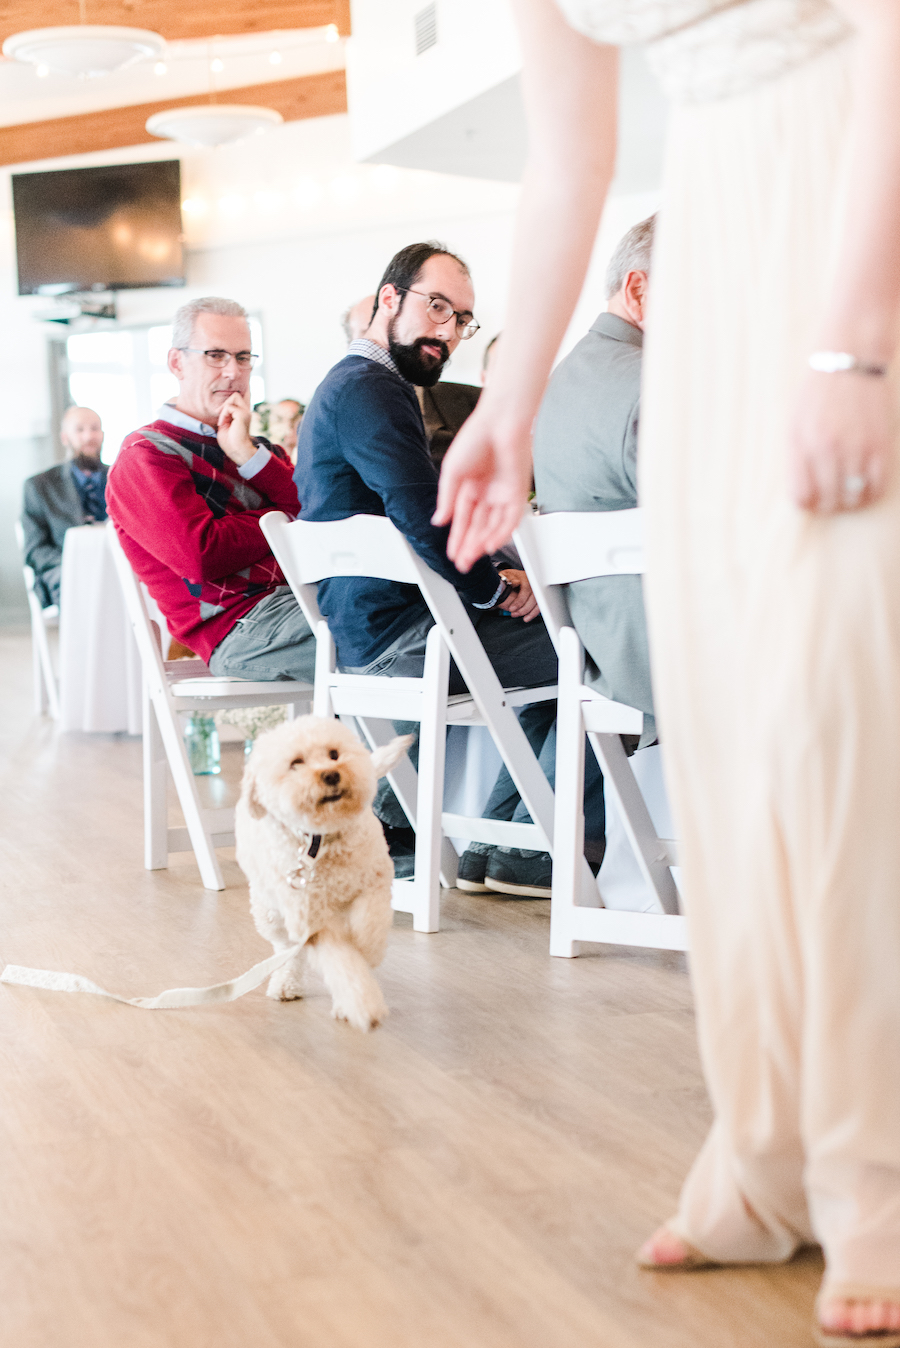 Dog ring bearer running down the aisle